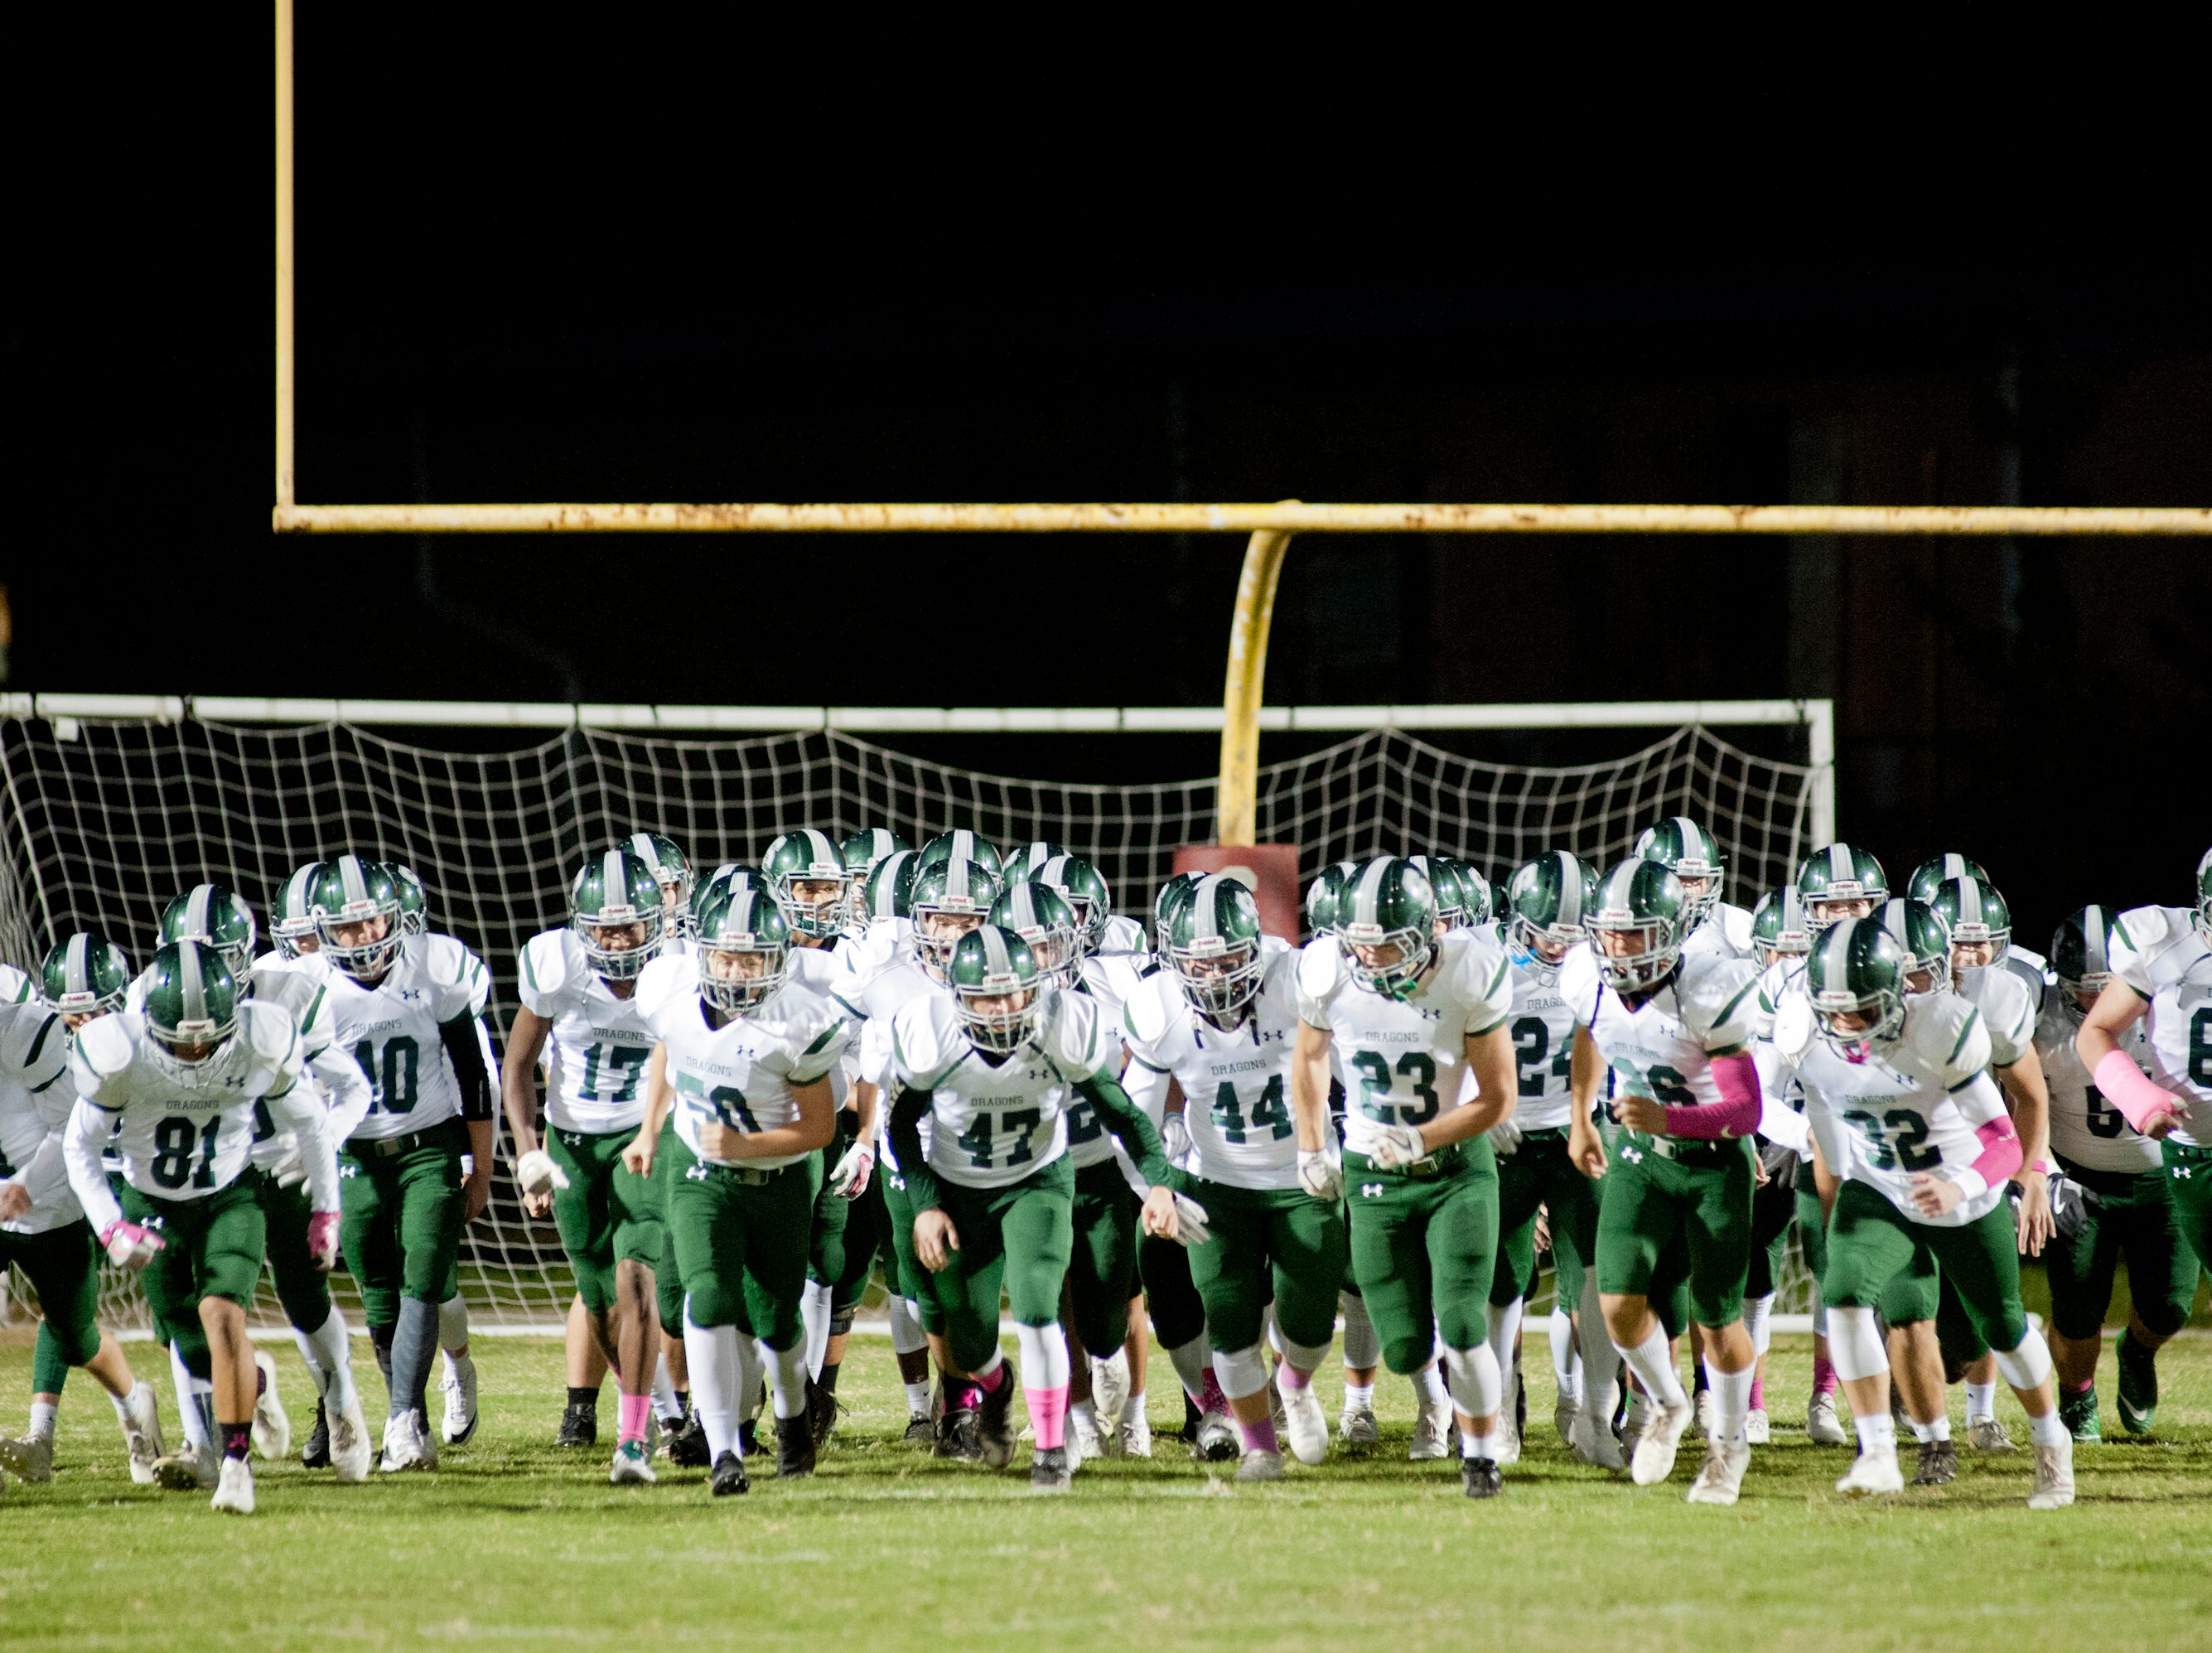 South Oldham takes to the field during the game. Oct. 12, 2018